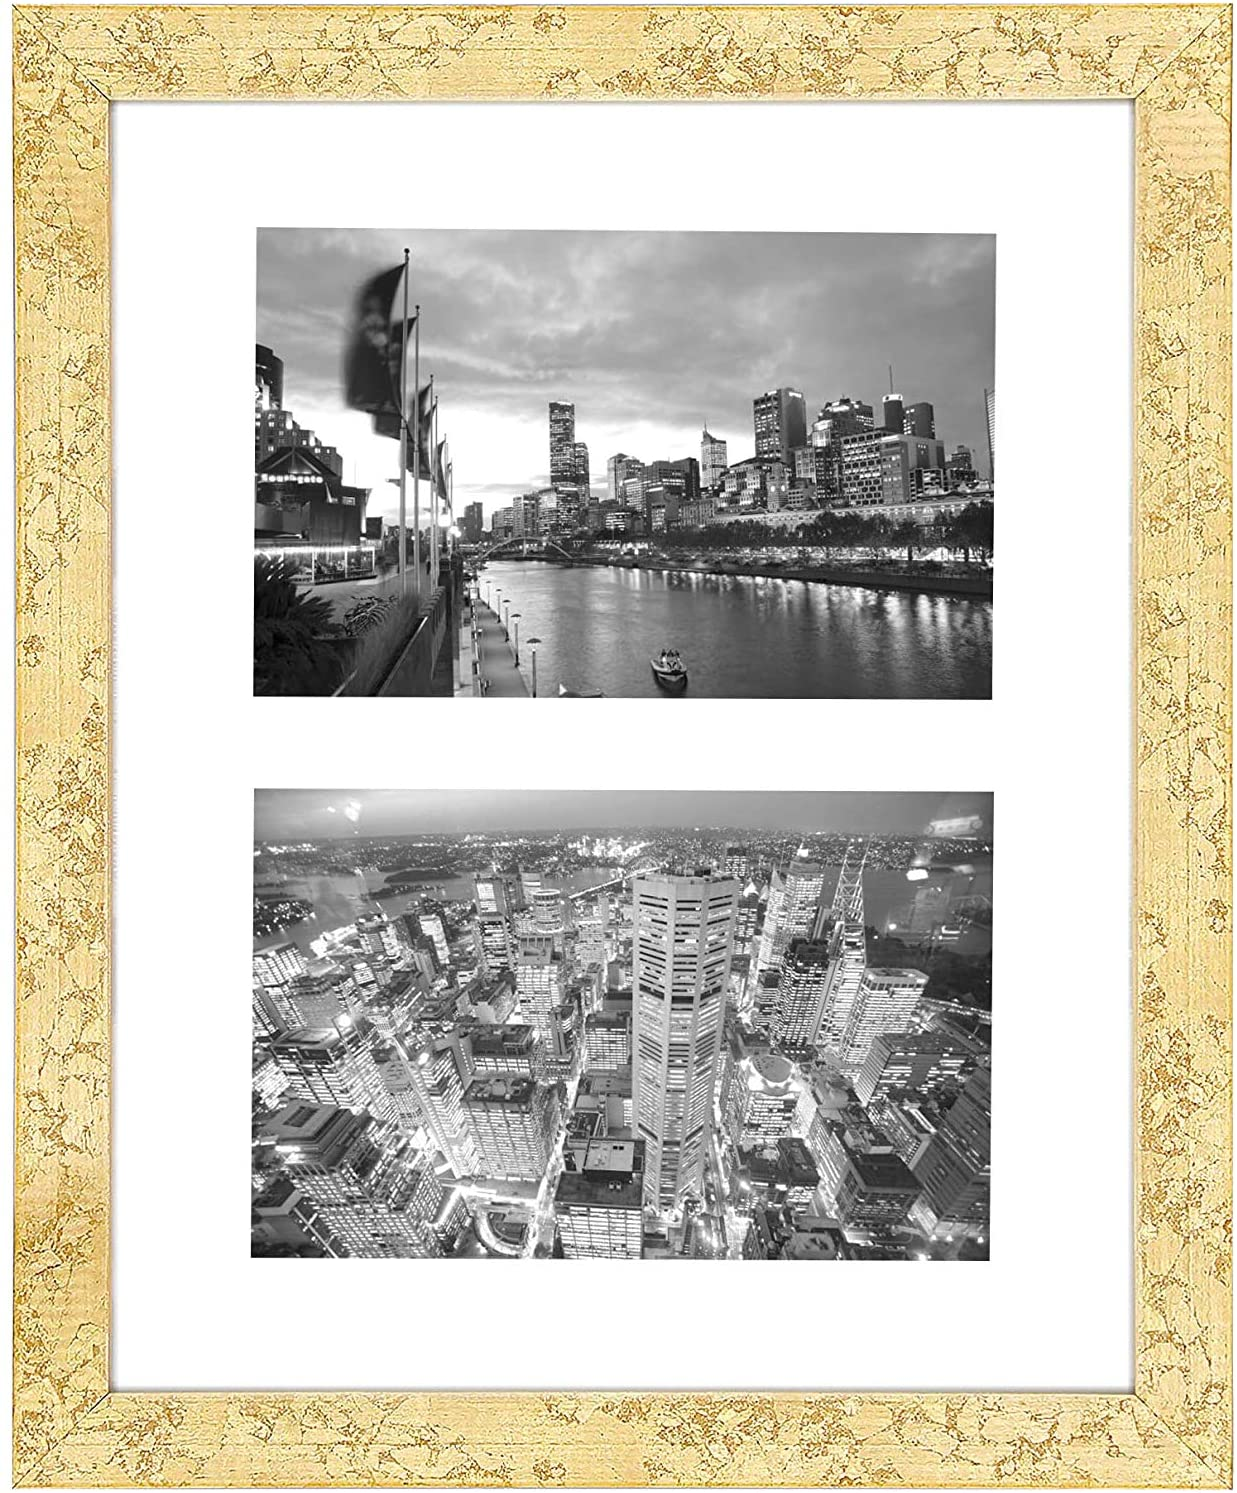 Golden State Art, 8x10 Gold Collage Picture Frame - White Mat for (2) 4x6 Pictures - Wood Molding - Easel Stand for Tabletop - D-Rings for Wall Display - Great for Homes, Offices, Events